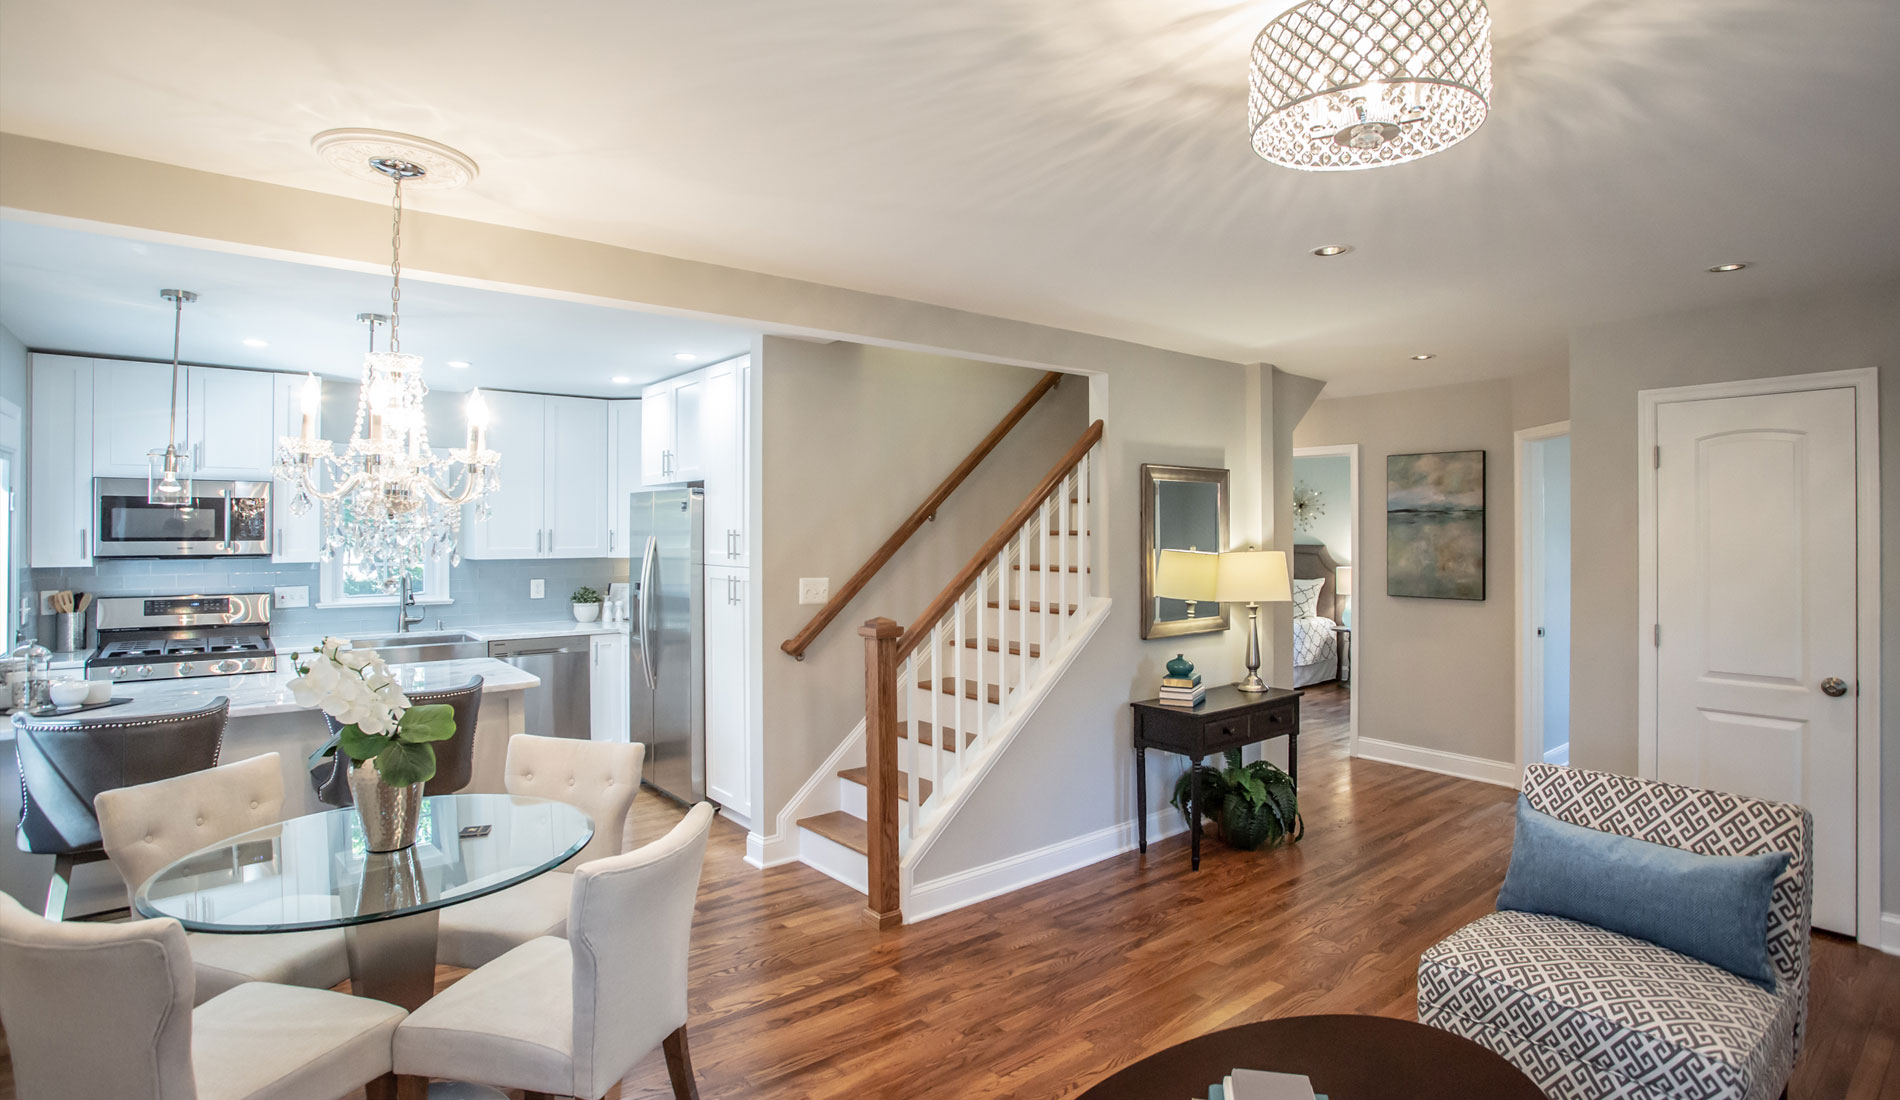 Commercial Photography & Videography, livingroom shot focusing on staircase